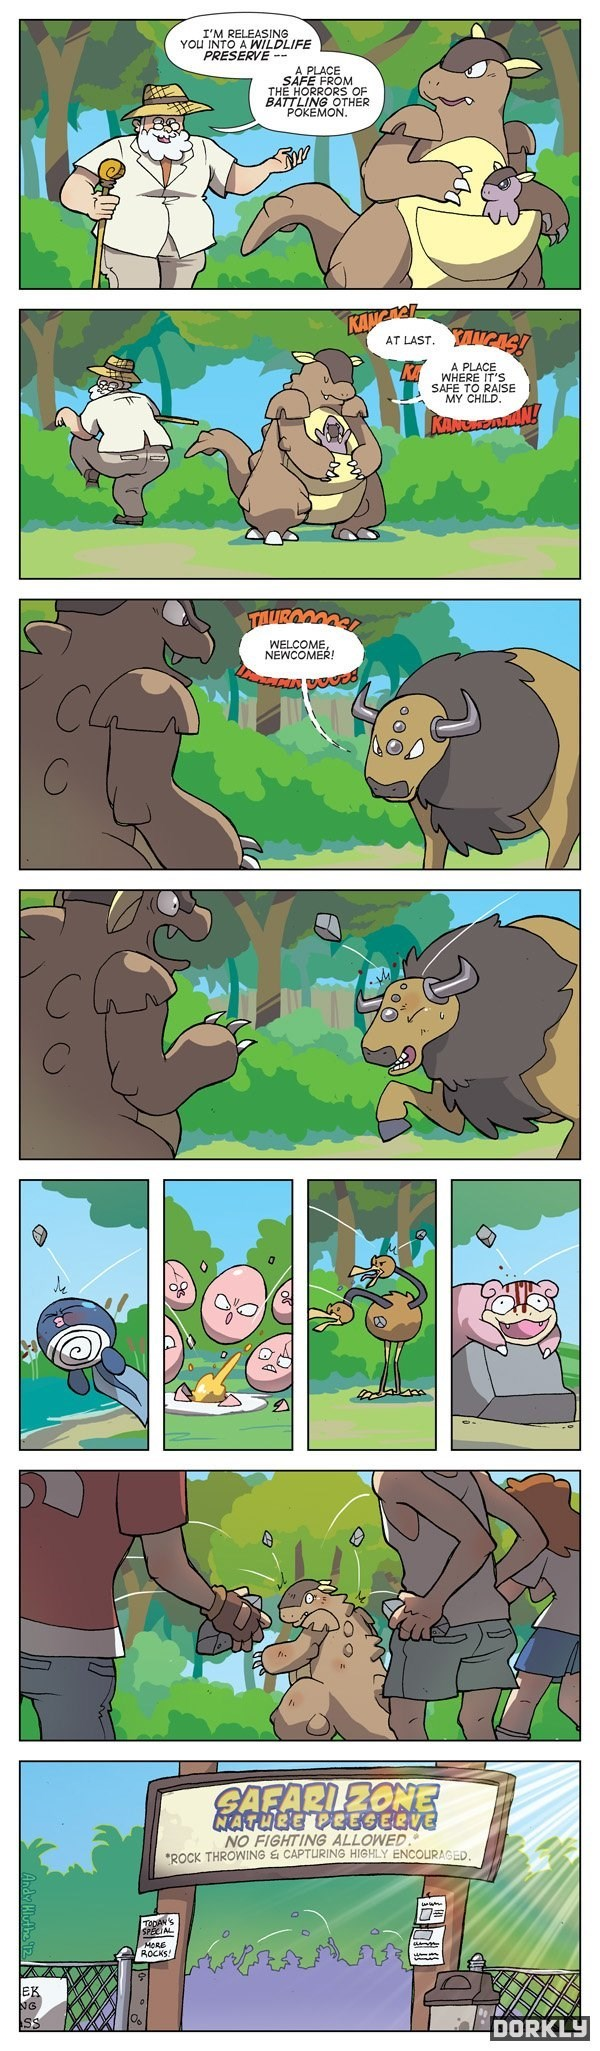 Comics - I'M RELEASING YOU INTO A WILDLIFE PRESERVE A PLACE SAFE FROM THE HORRORS OF BATTLING OTHER POKEMON KANGRGI AT LAST A PLACE WHERE IT'S SAFE TO RAISE MY CHILD KAMC AN! WELCOME, NEWCOMER! C SAFARLZONE NO FIGHTING ALLOWED ROCK THROWING & CAPTURING HIGHLY ENCOURAGED. אשנחנפ בn$נמכב AL MORE ROCKS DORKLY